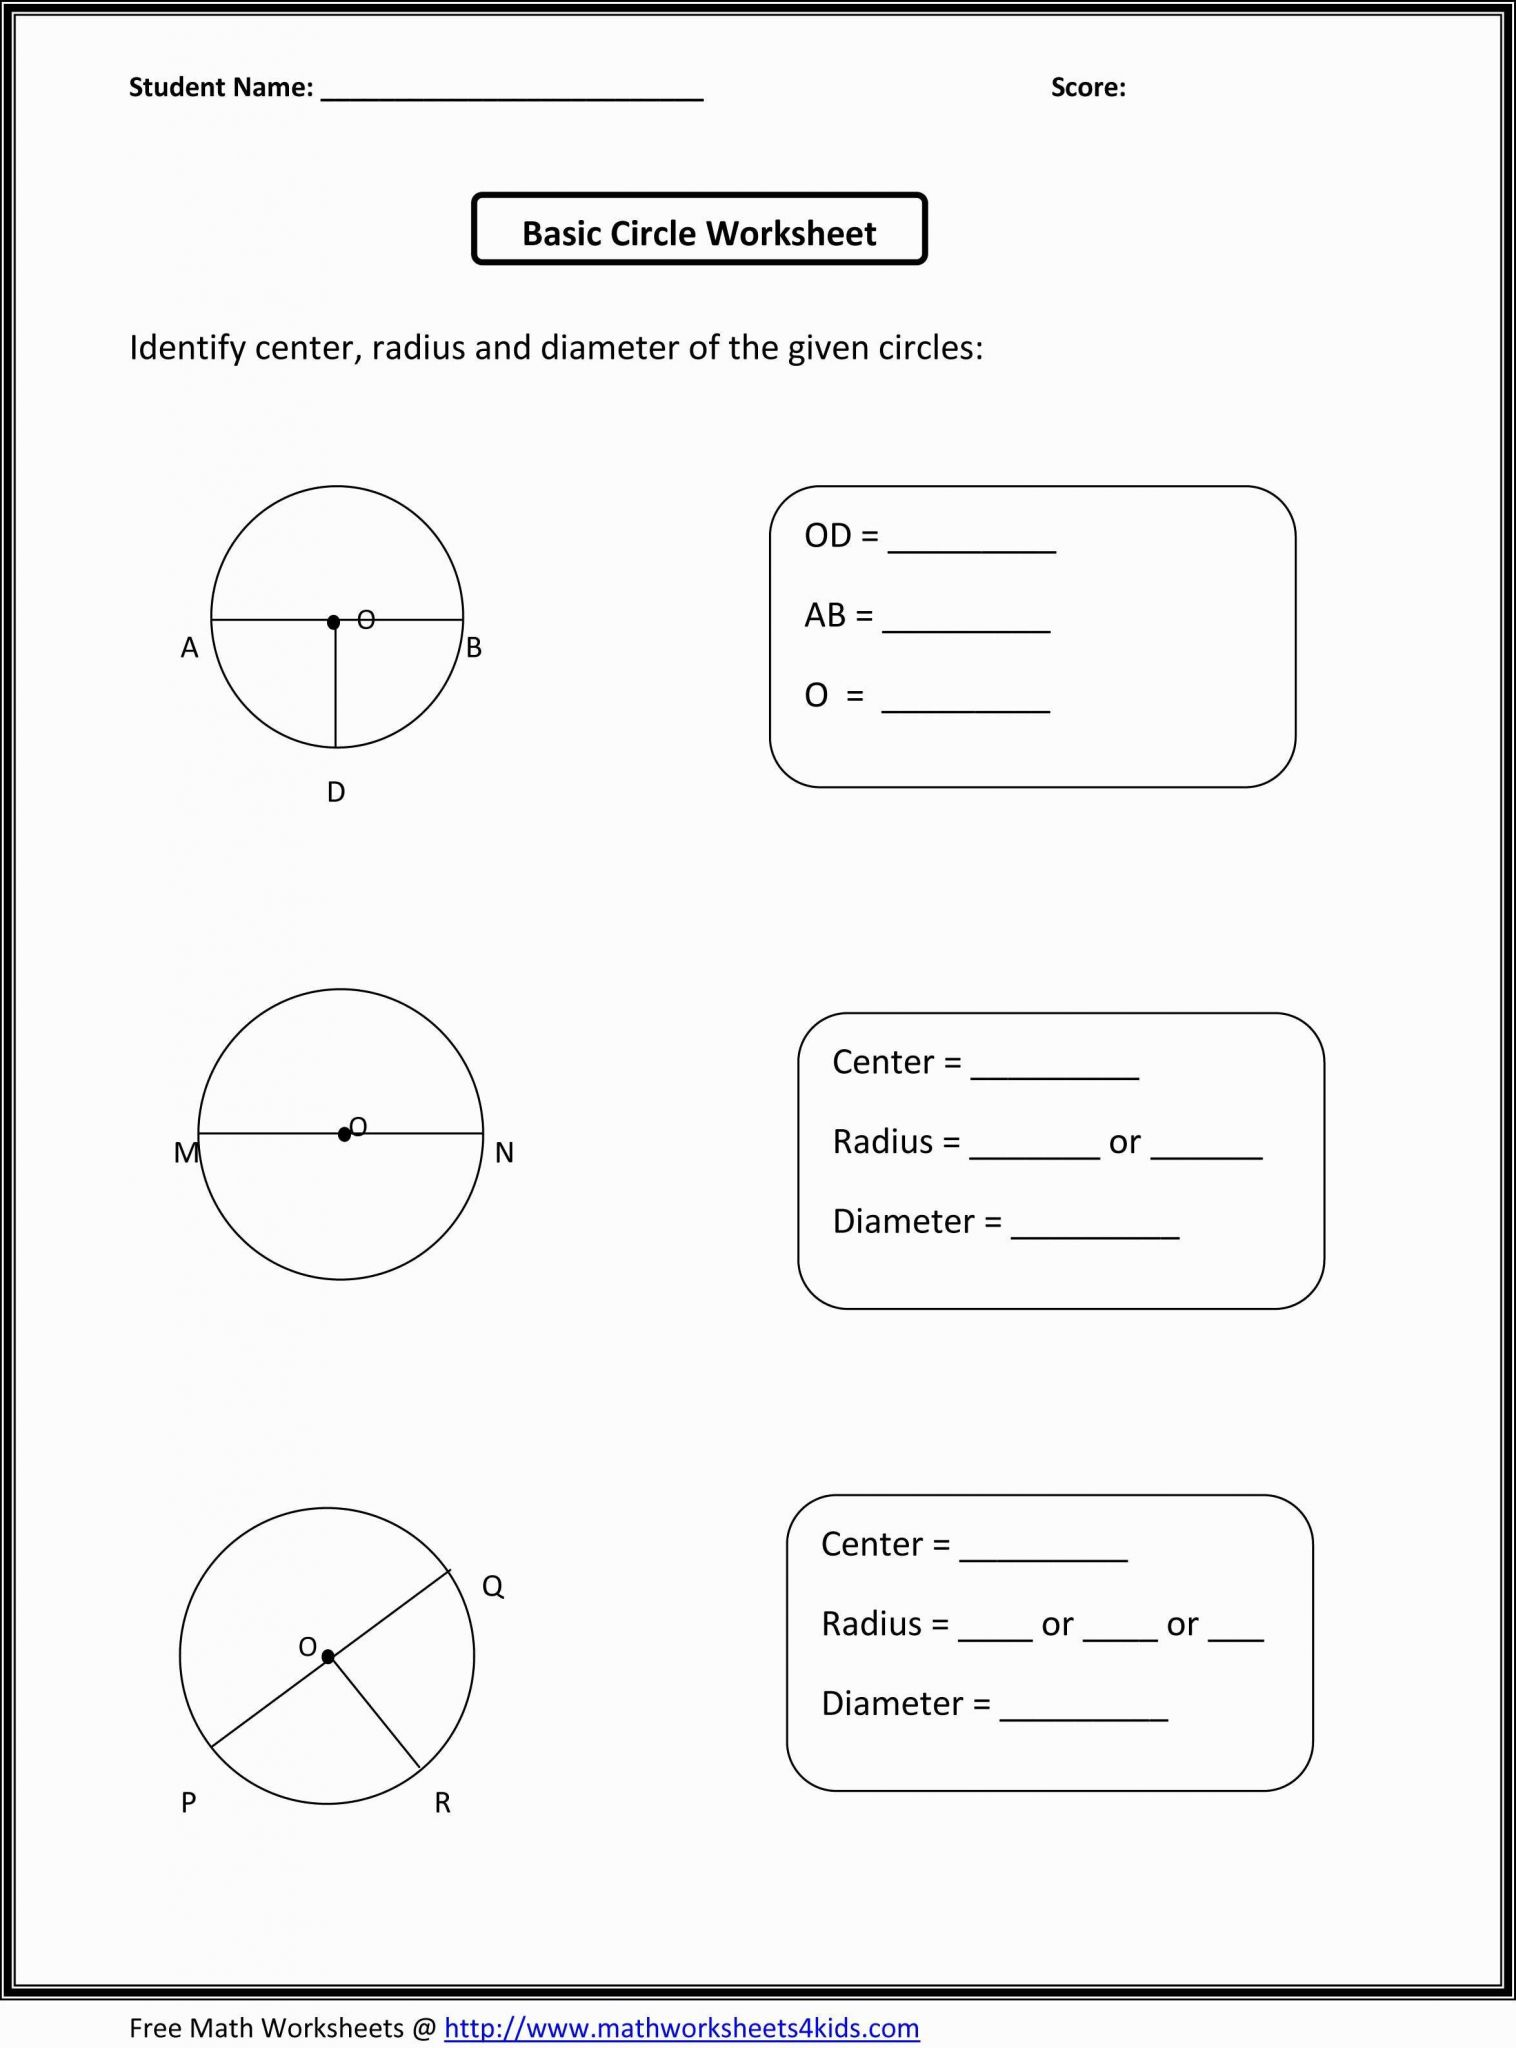 Solving Linear Equations Worksheet Answers